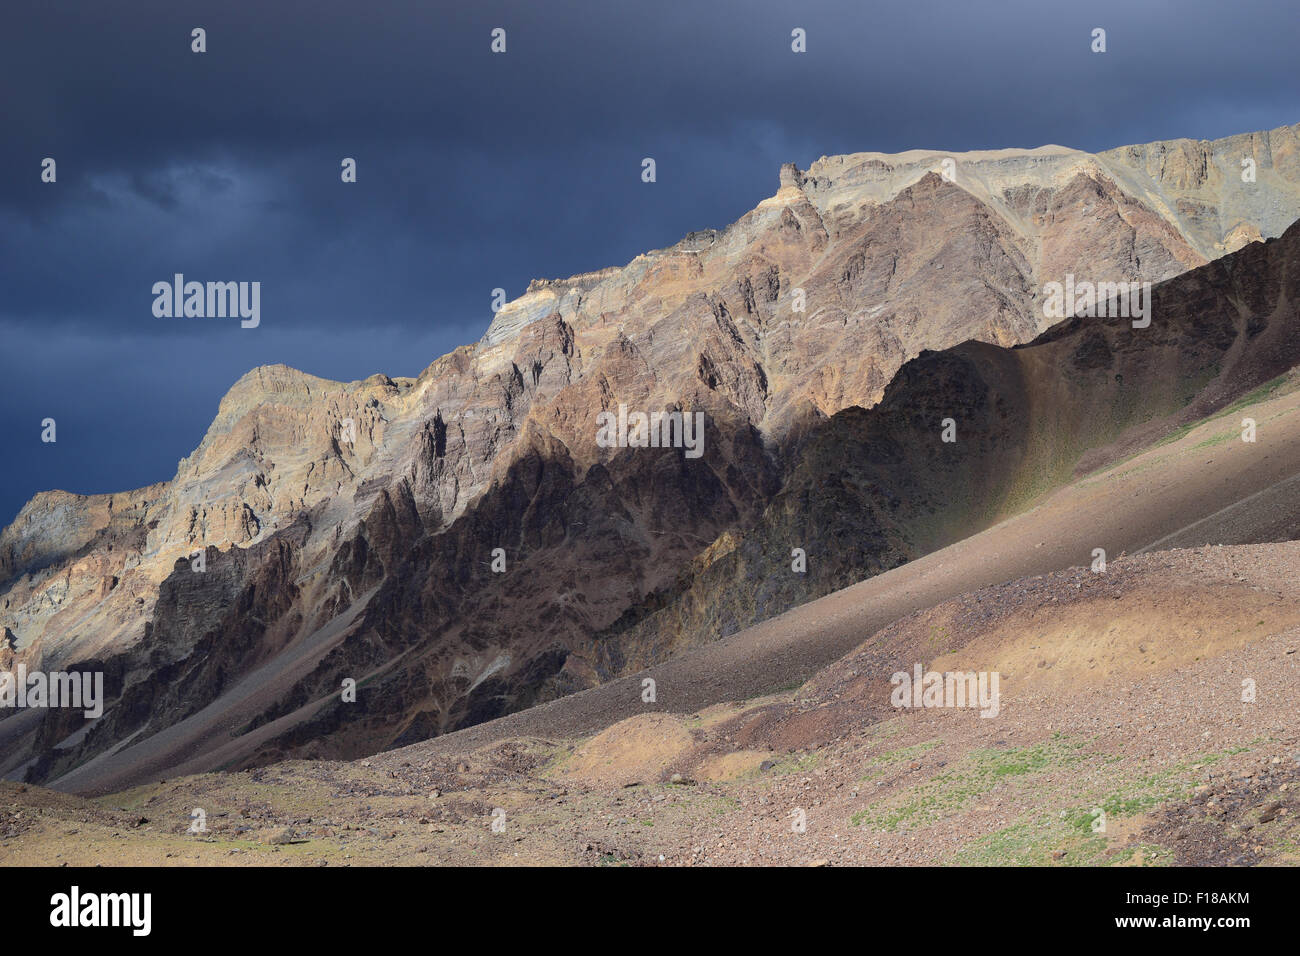 Ladakh India Himalayas Mountains in Dark and Light Combination typical Ladakh Kashmir Scenery - Stock Image